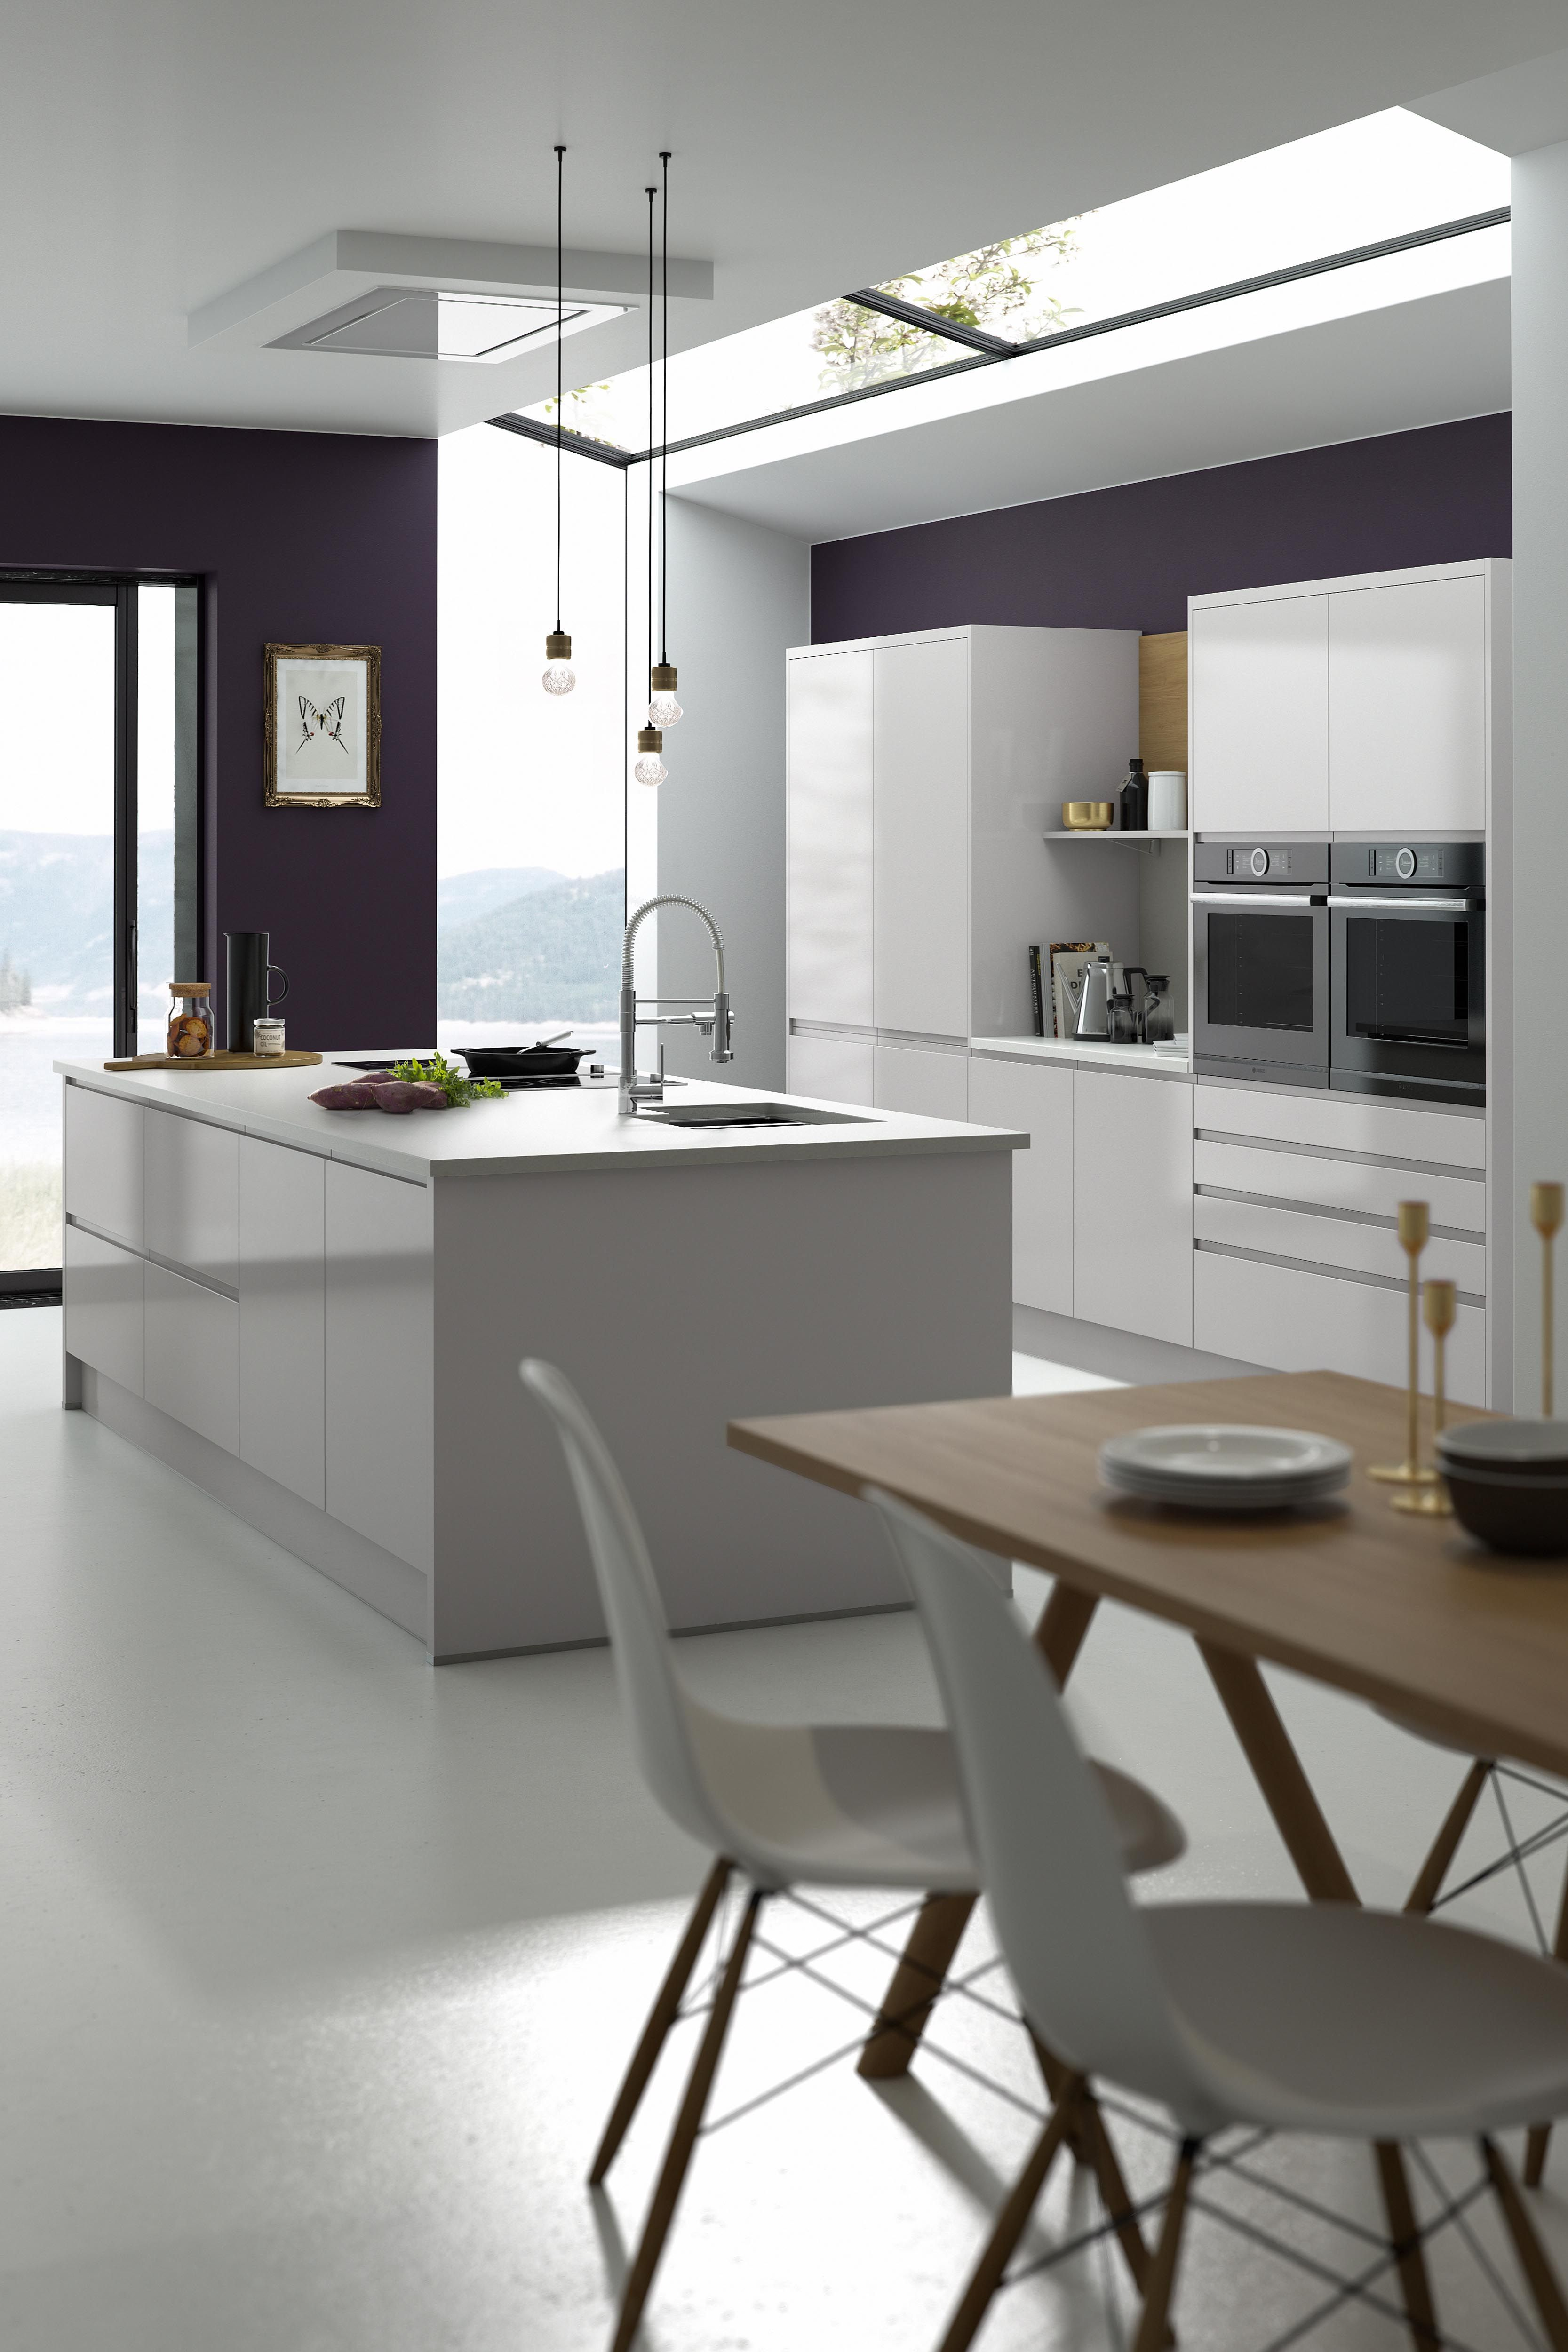 Best Modern Kitchen With White Gloss Handleless Doors With 400 x 300